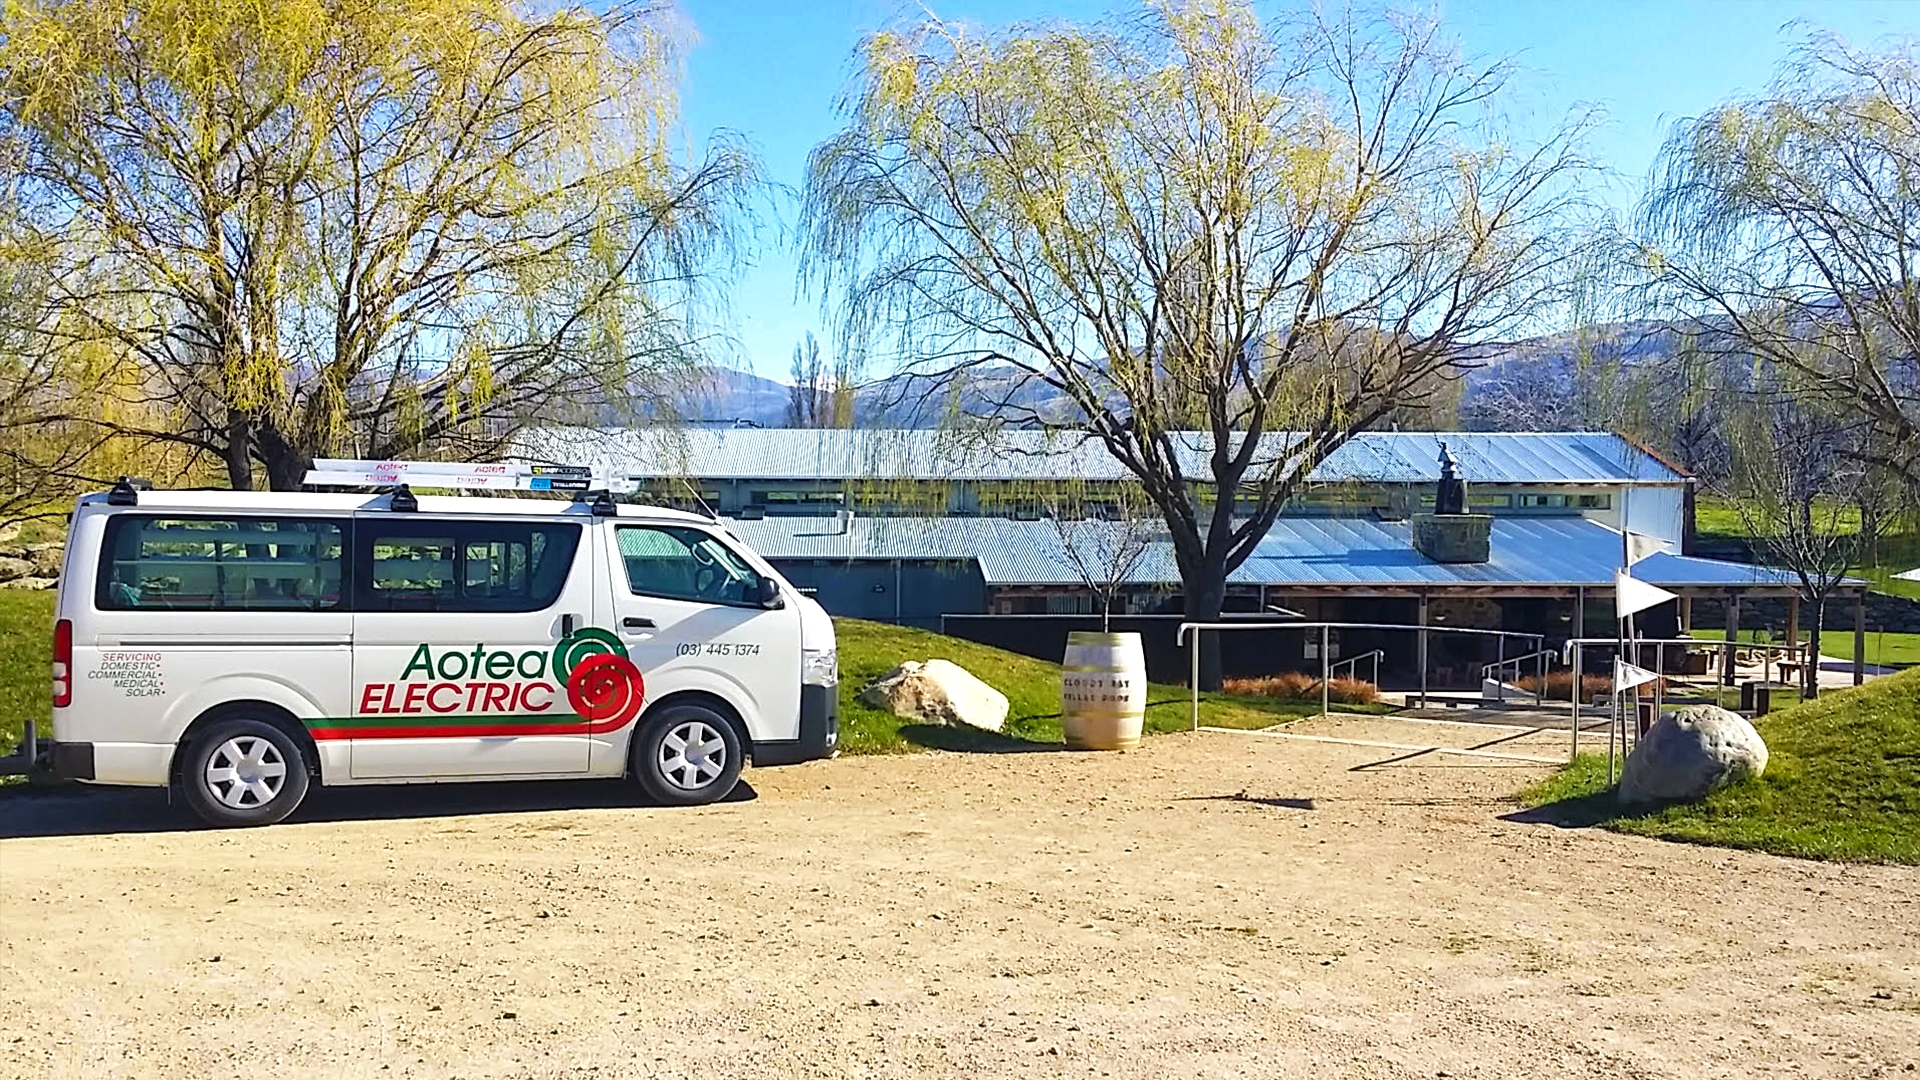 Aotea Electric Cromwell continues to provide expert service for Cloudy Bay Vineyards